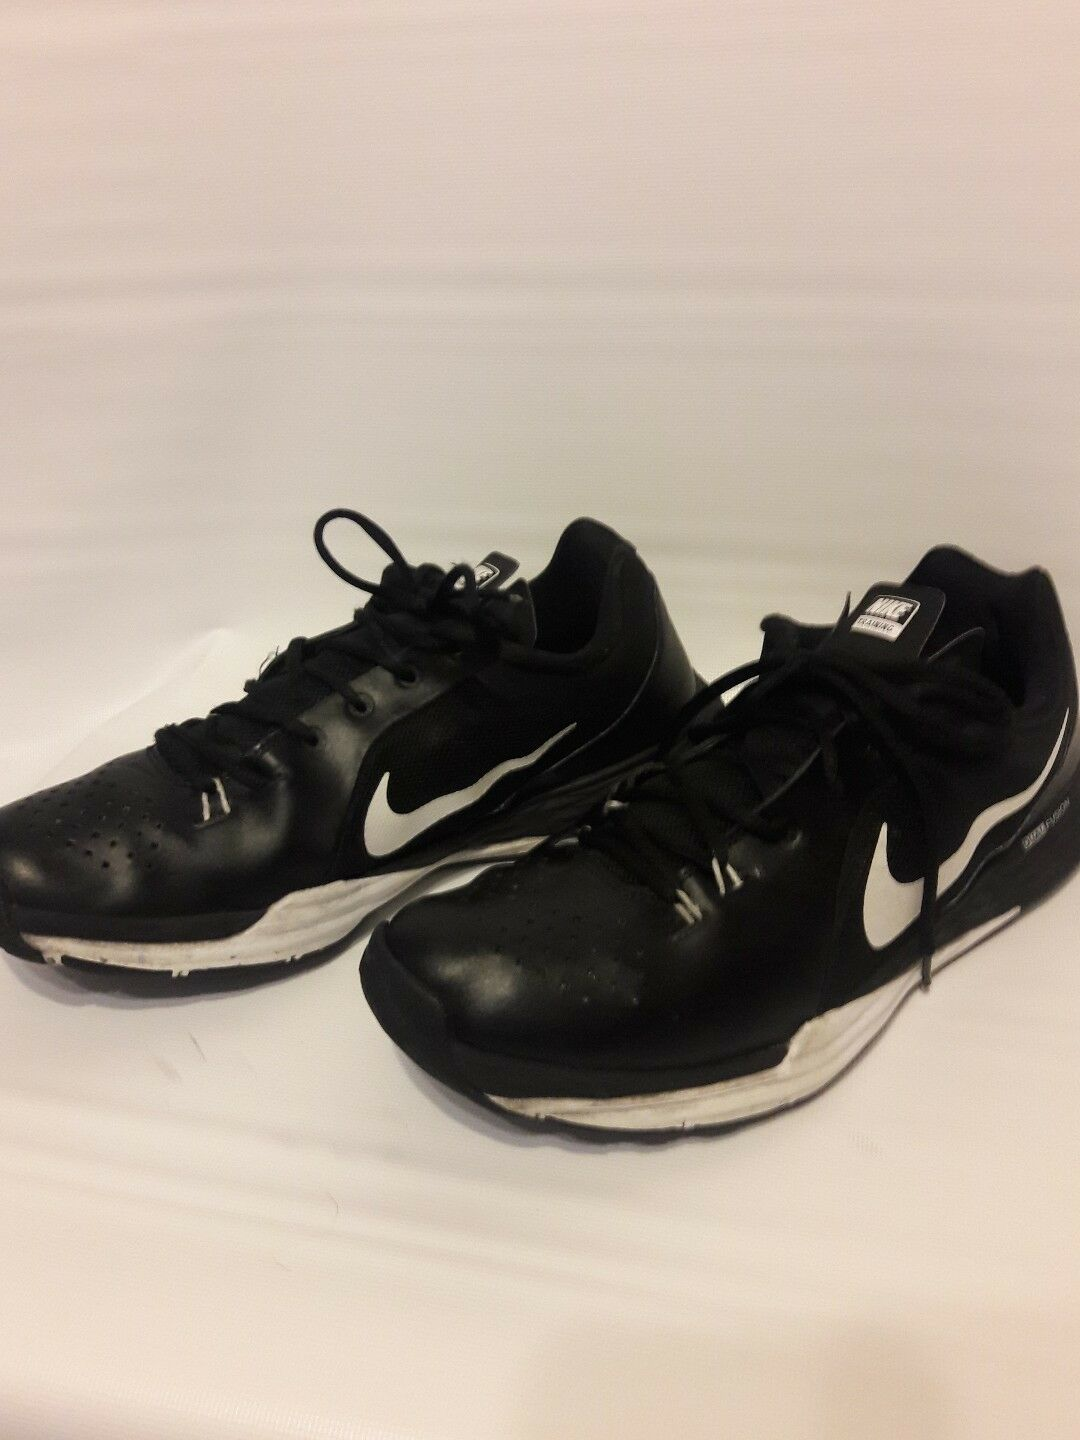 MENS.NIKE  DUAL FUSION.BLACK LEATHER .RUNING  SHOES SIZE 11  Great discount